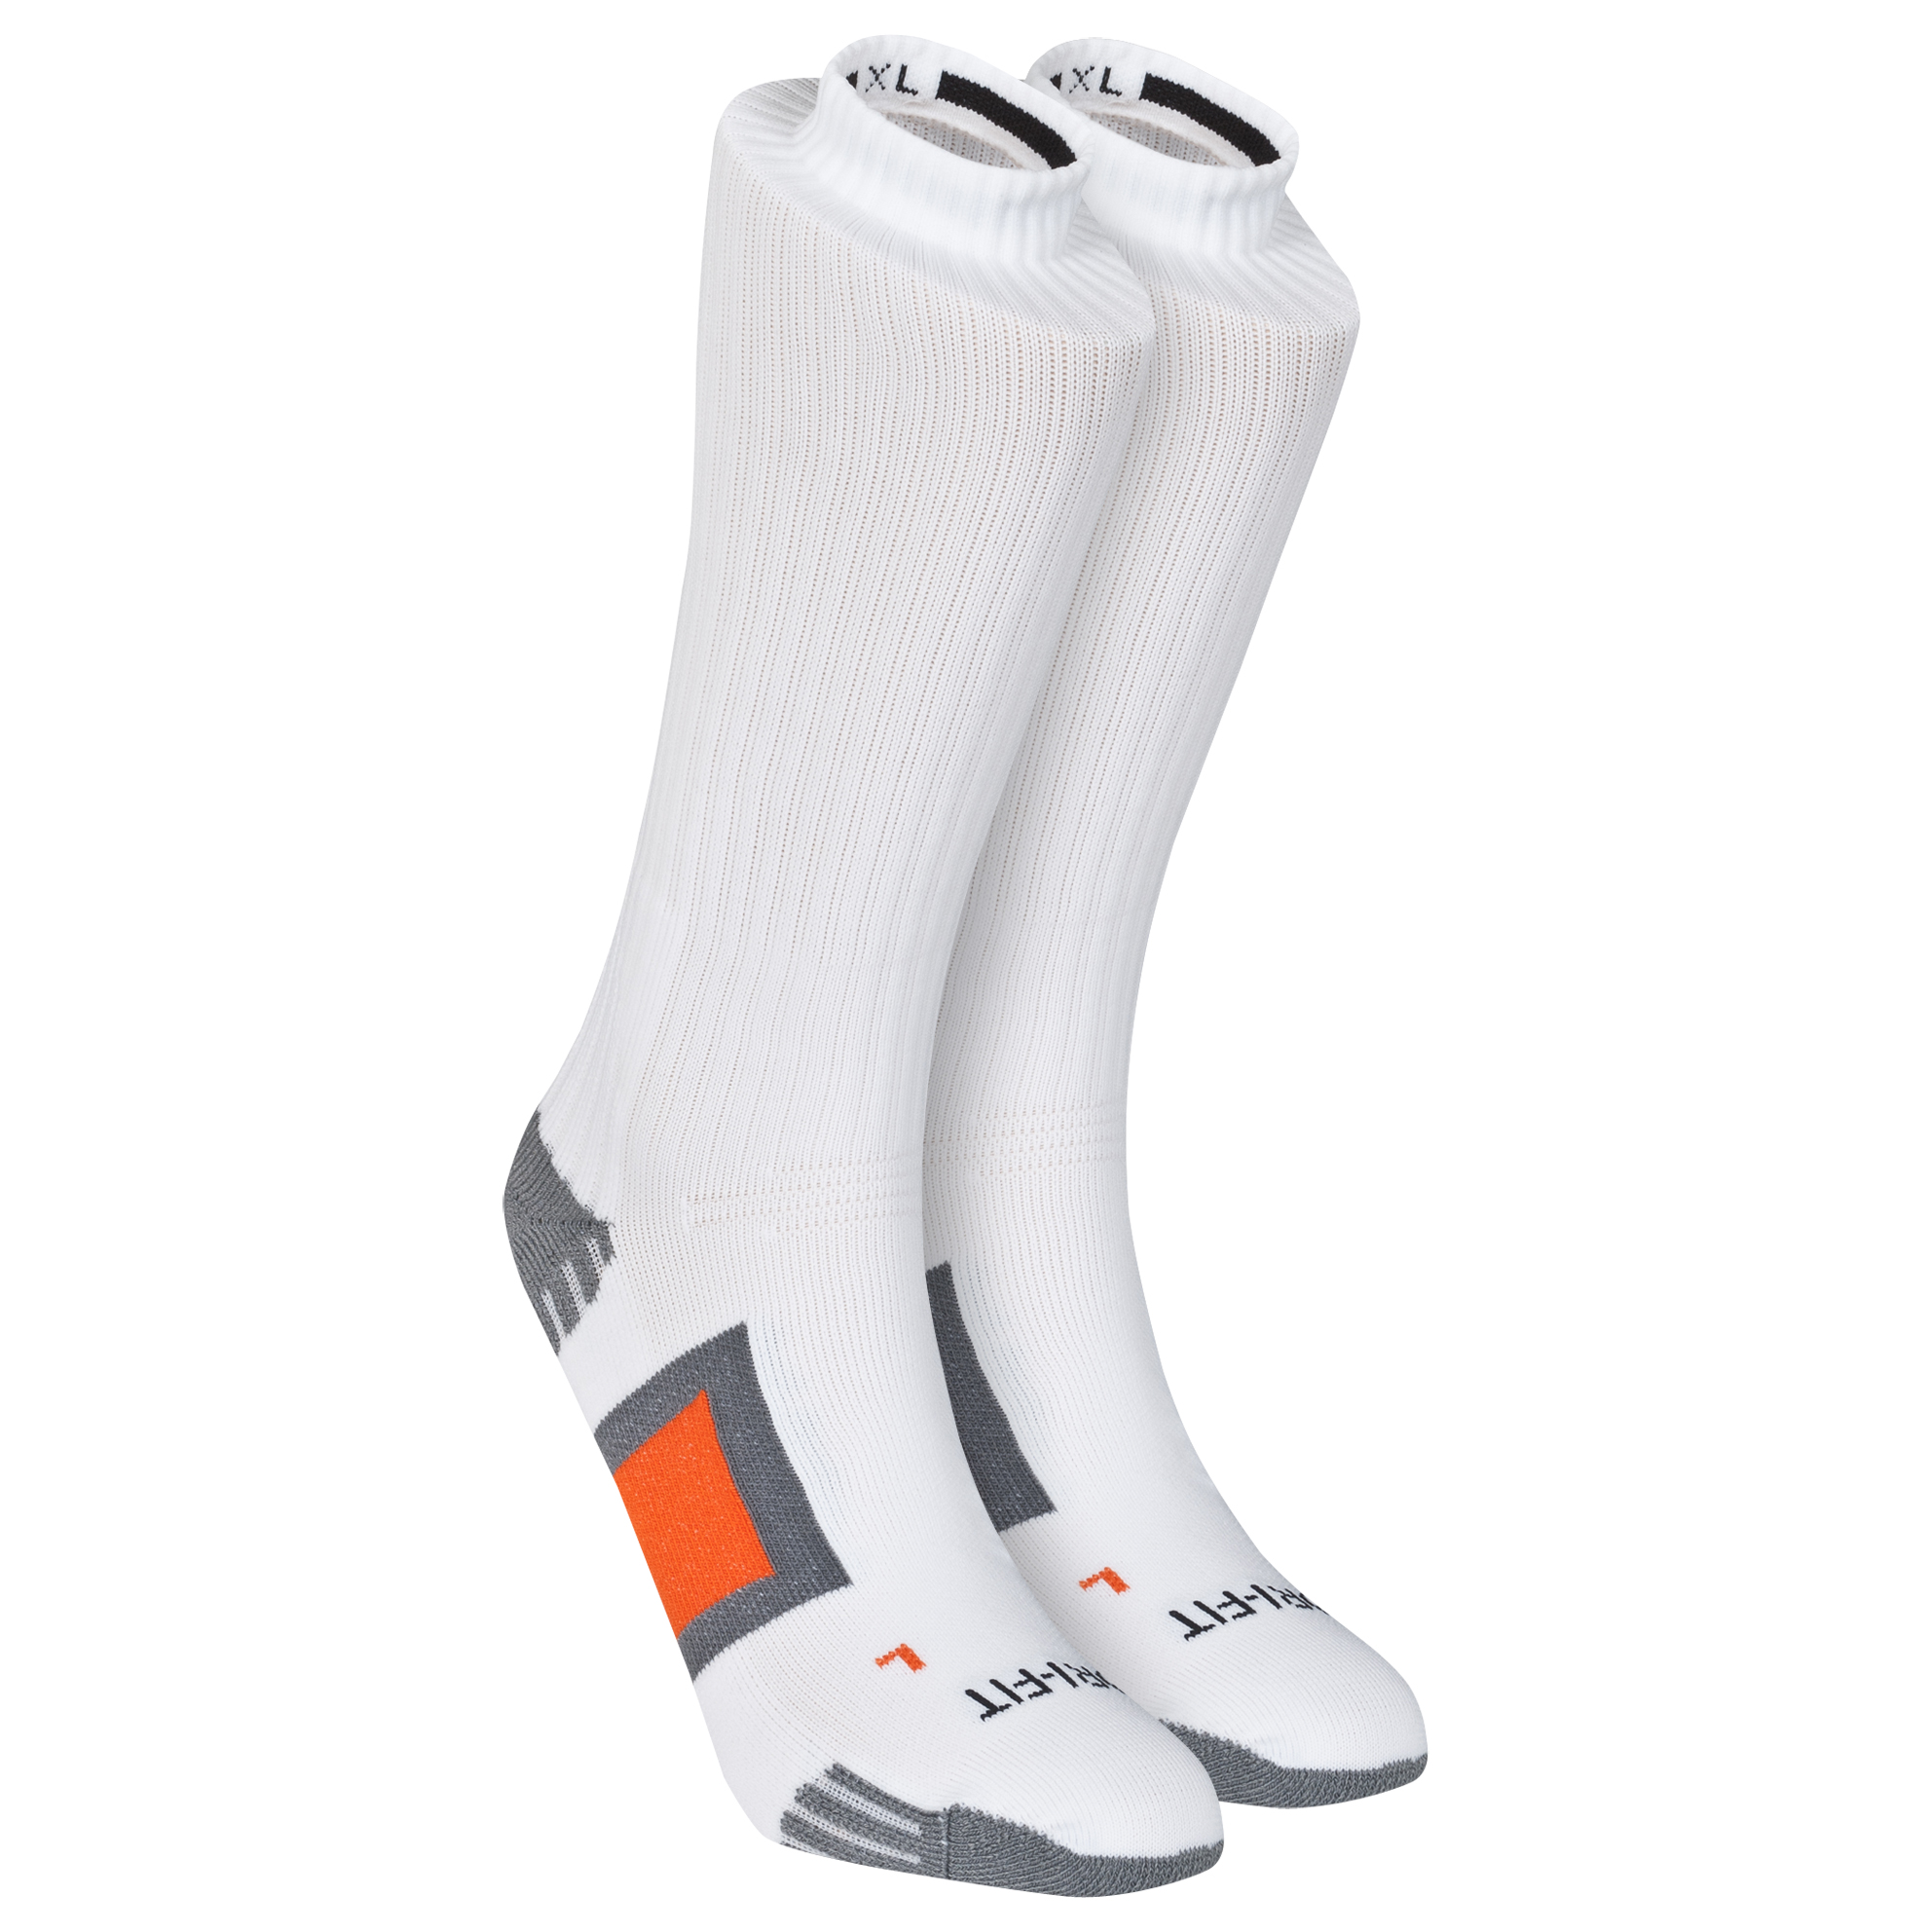 Nike DriFit Channel Cushioning Practice Sock - White/Carbon Heather/Flint Grey/Deep Orange White